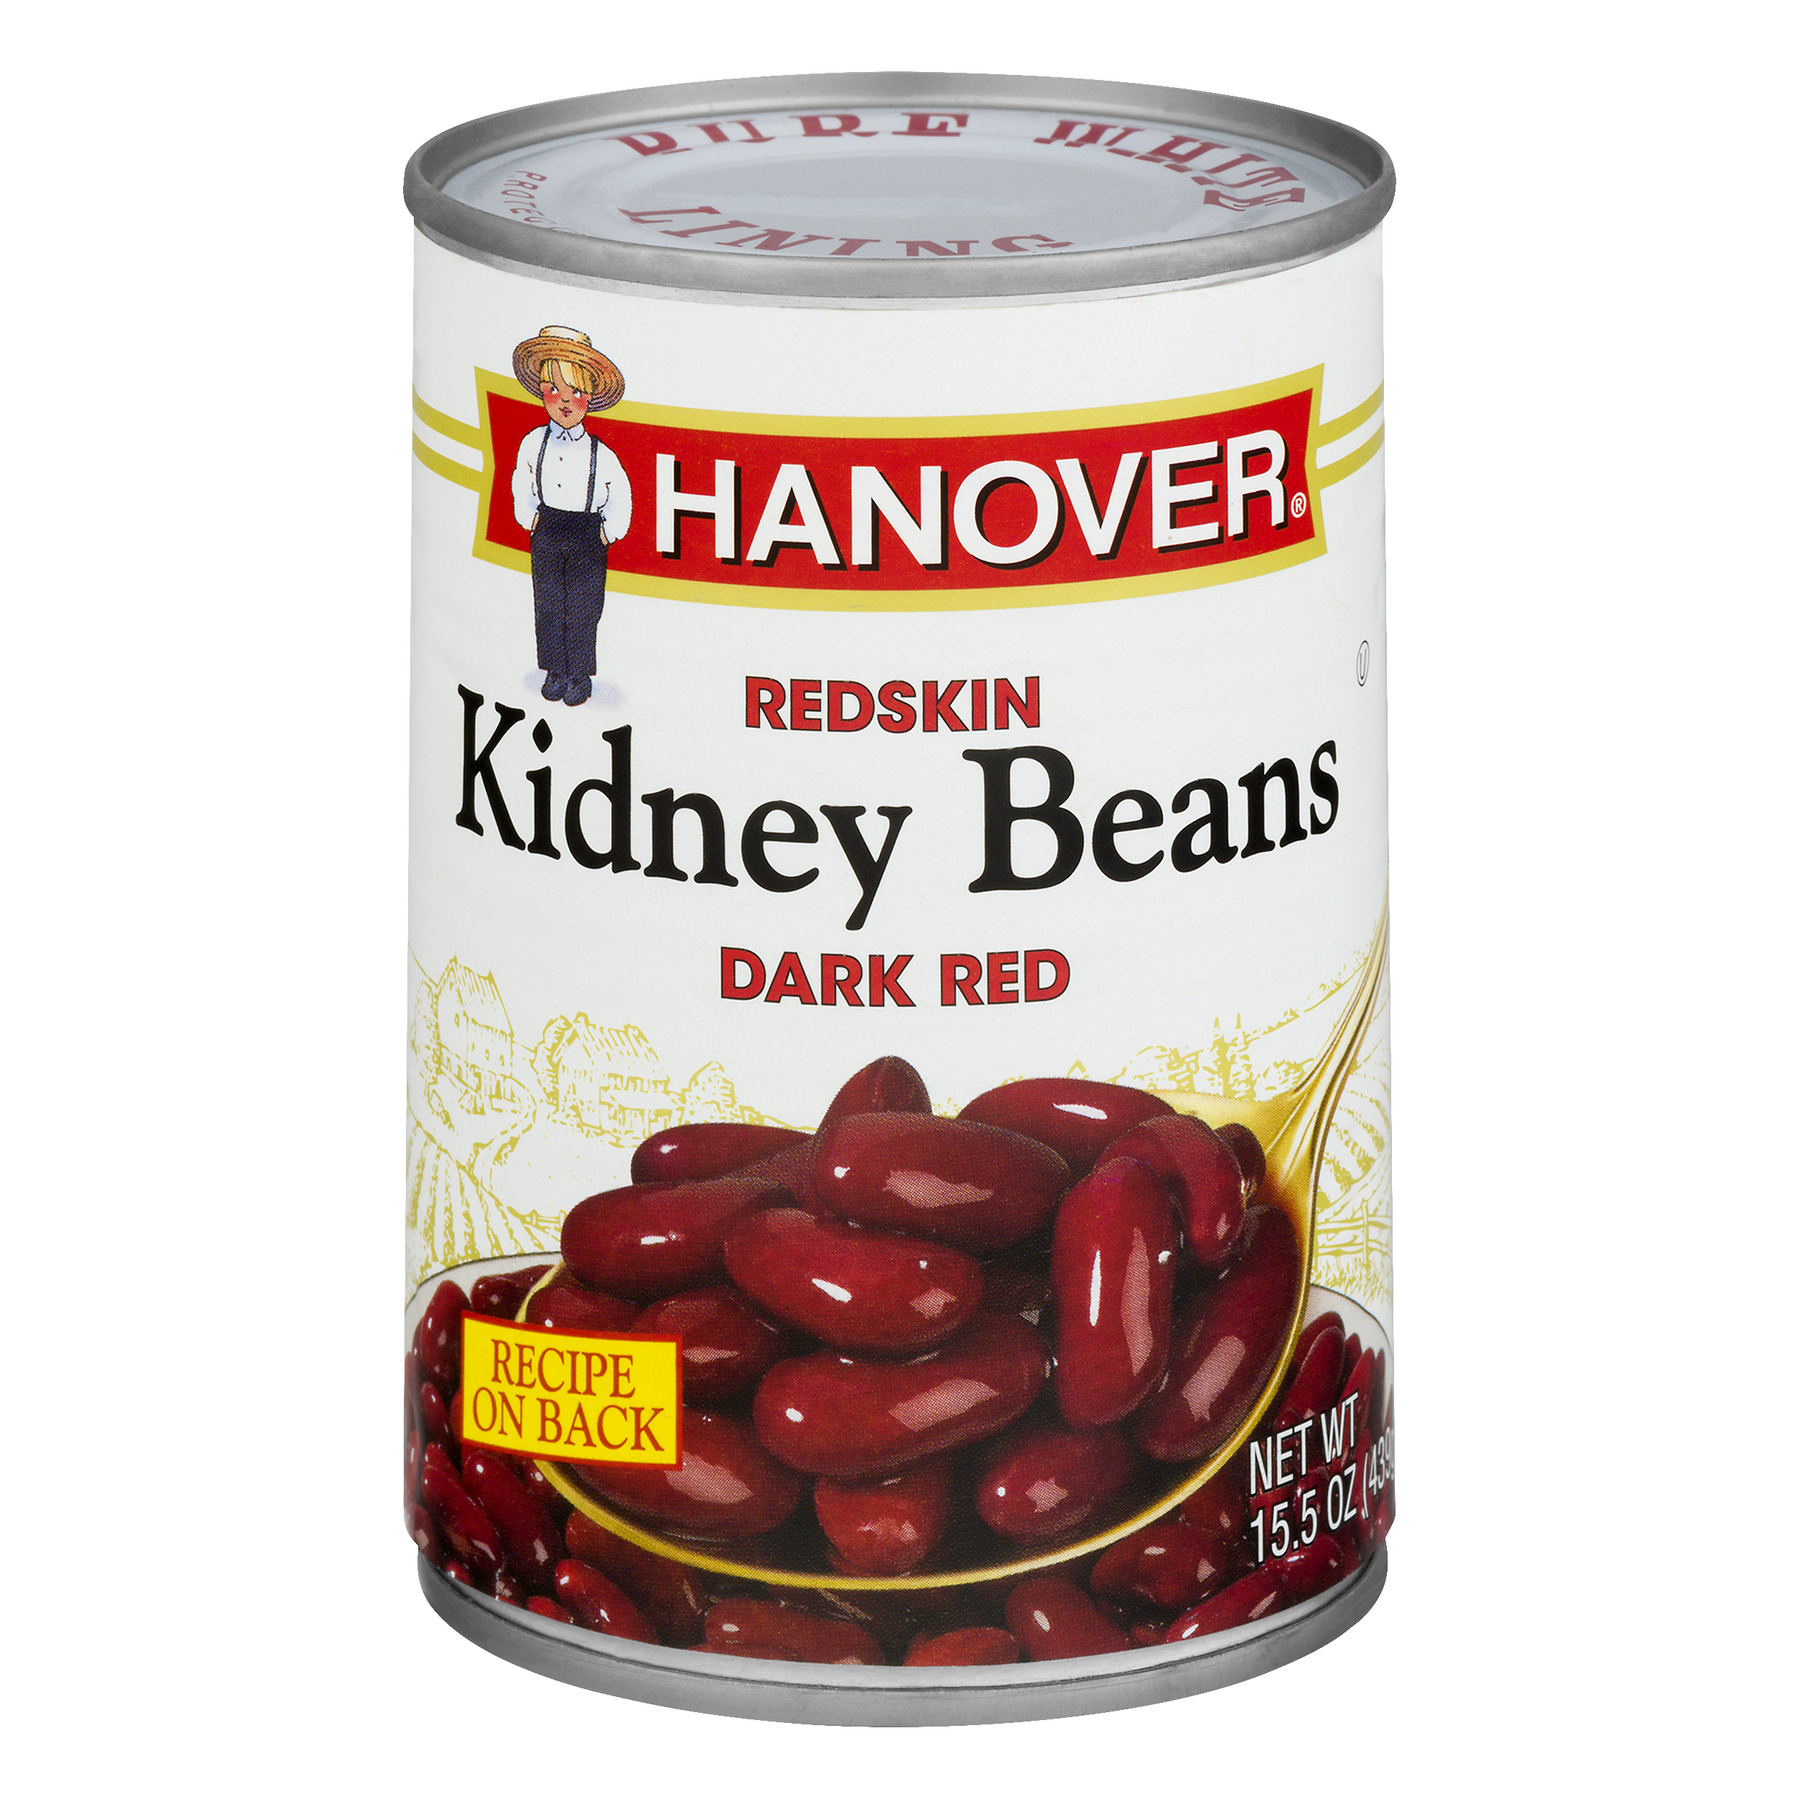 Hanover Redskin Kidney Beans Dark Red, 15.5 OZ